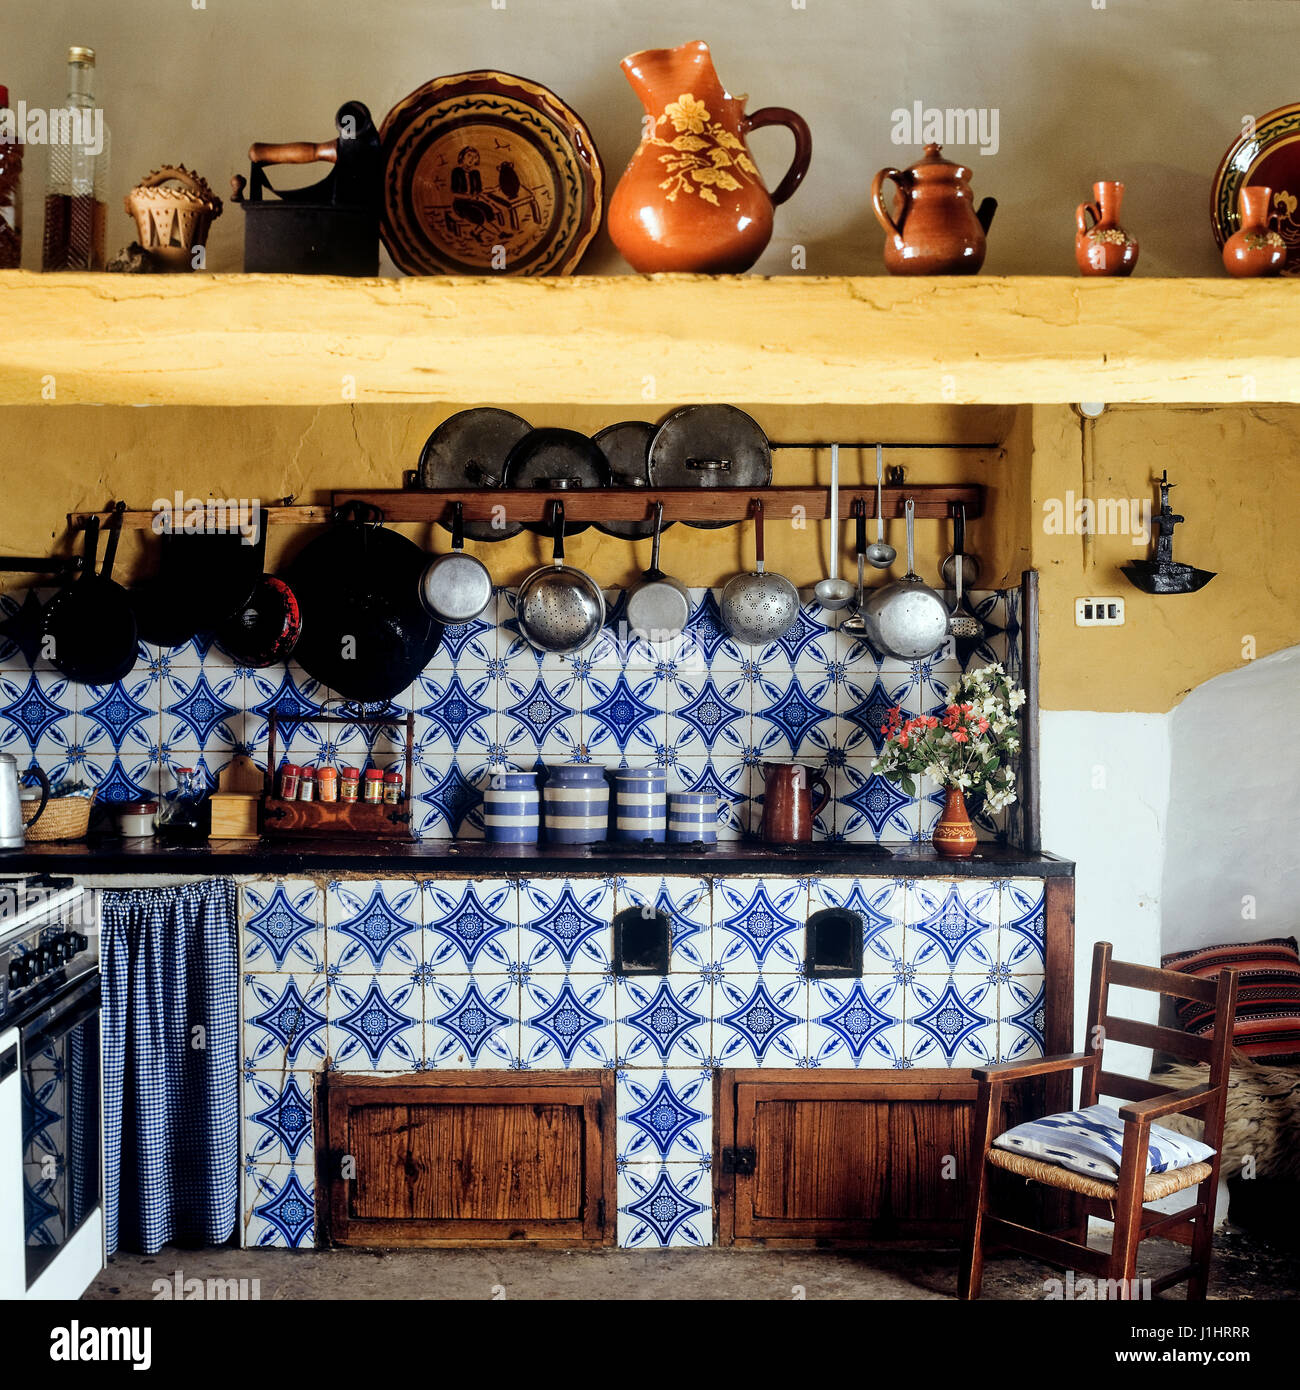 Tiled kitchen. Stock Photo